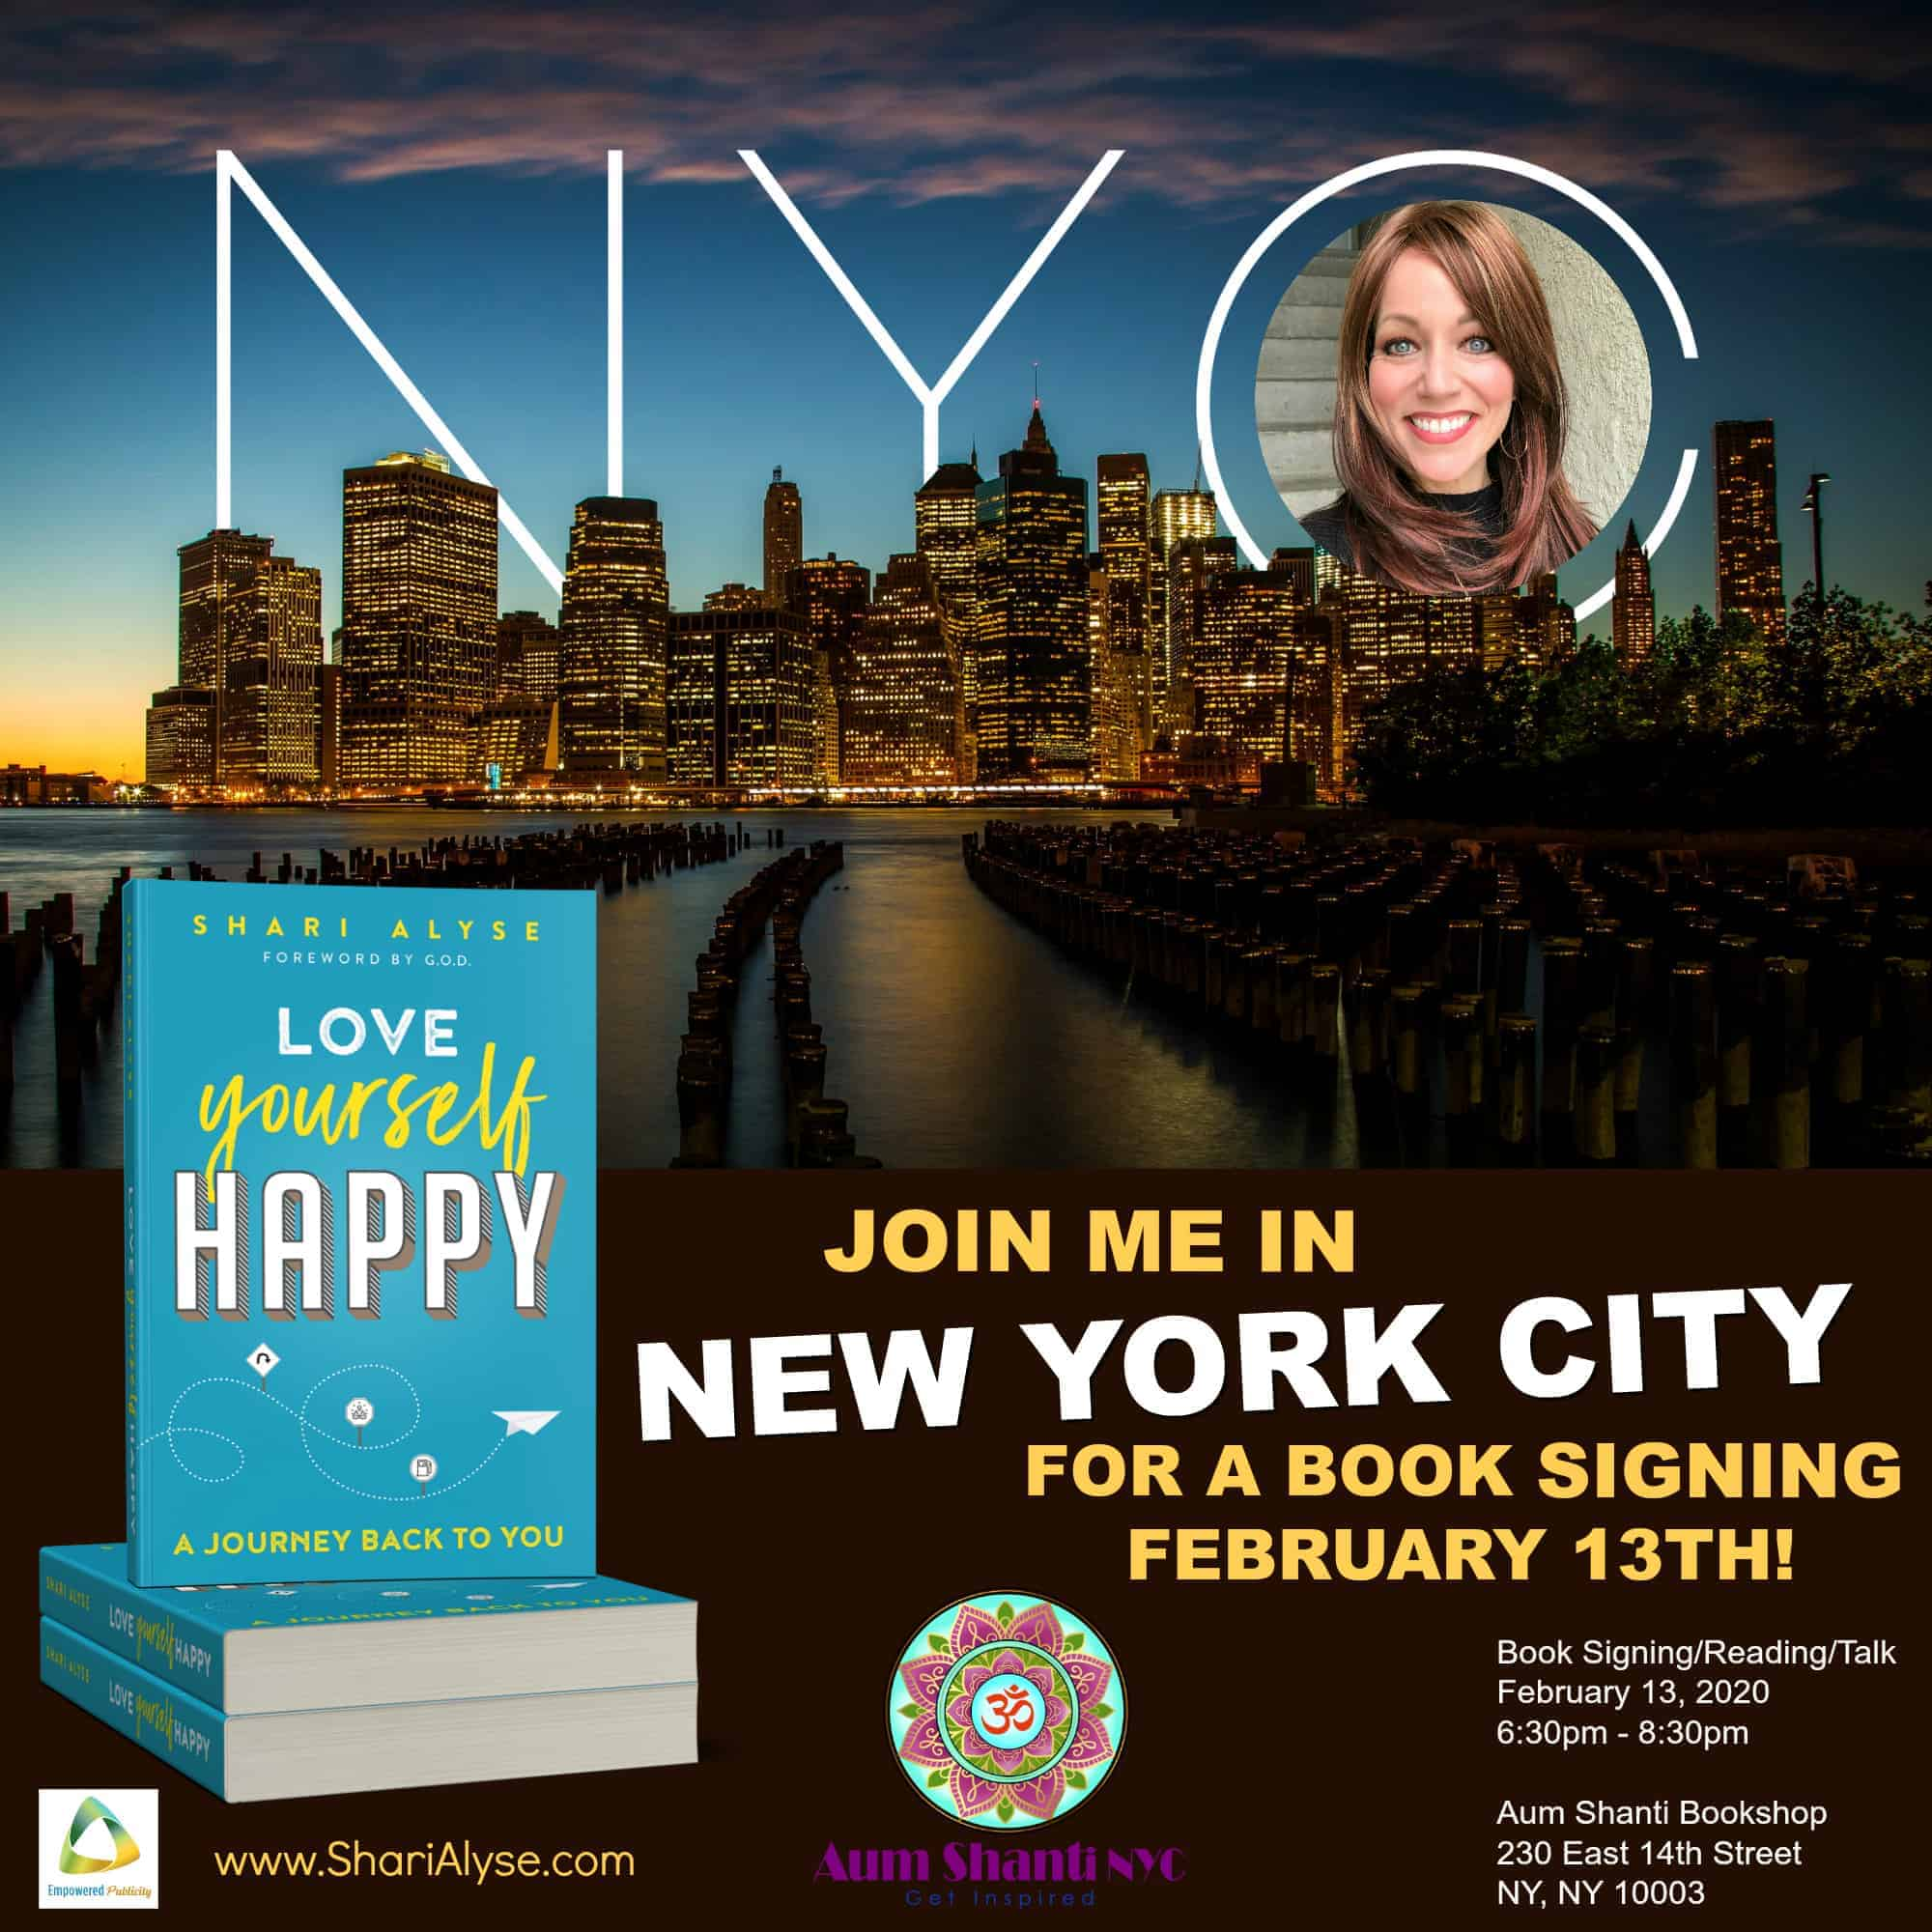 Hiya, Big Apple! You are next up on the Love Yourself Happy book tour! I hope to see your awesome se